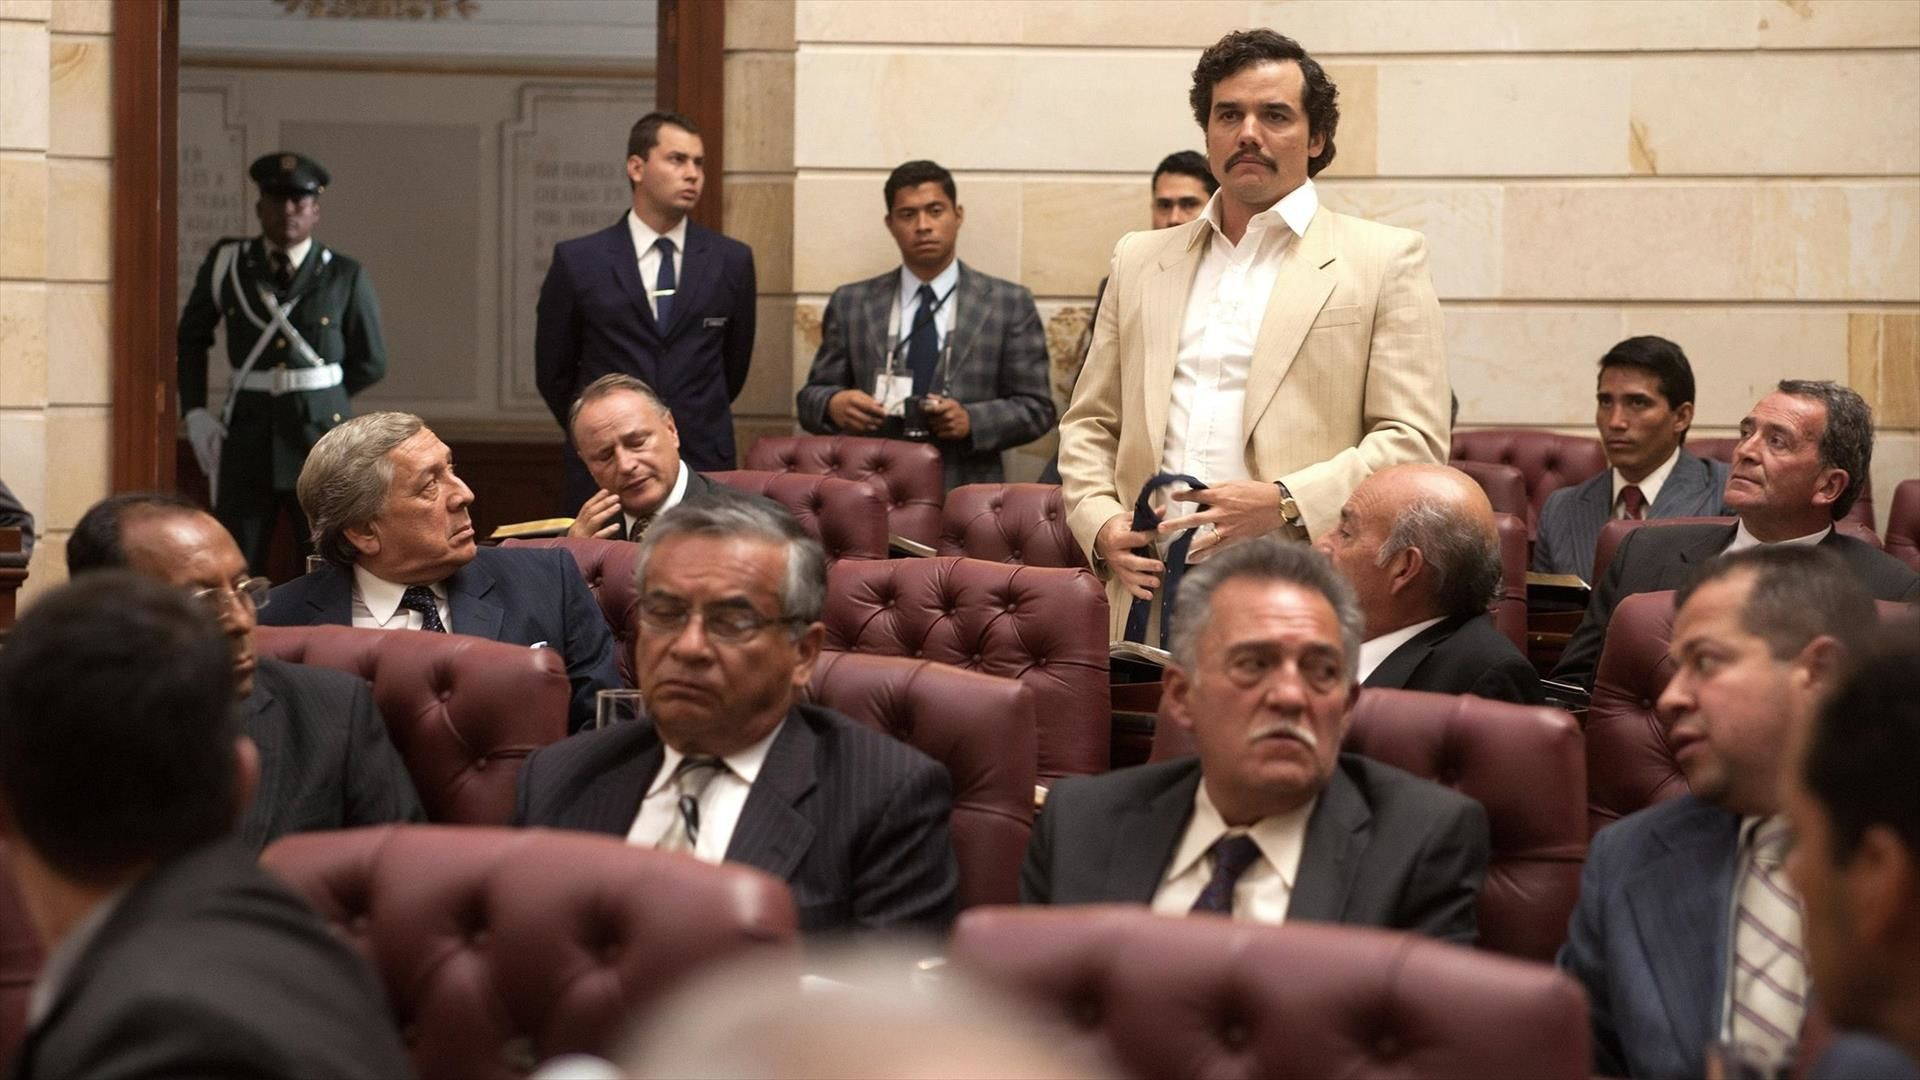 Narcos - S1 - Ep3